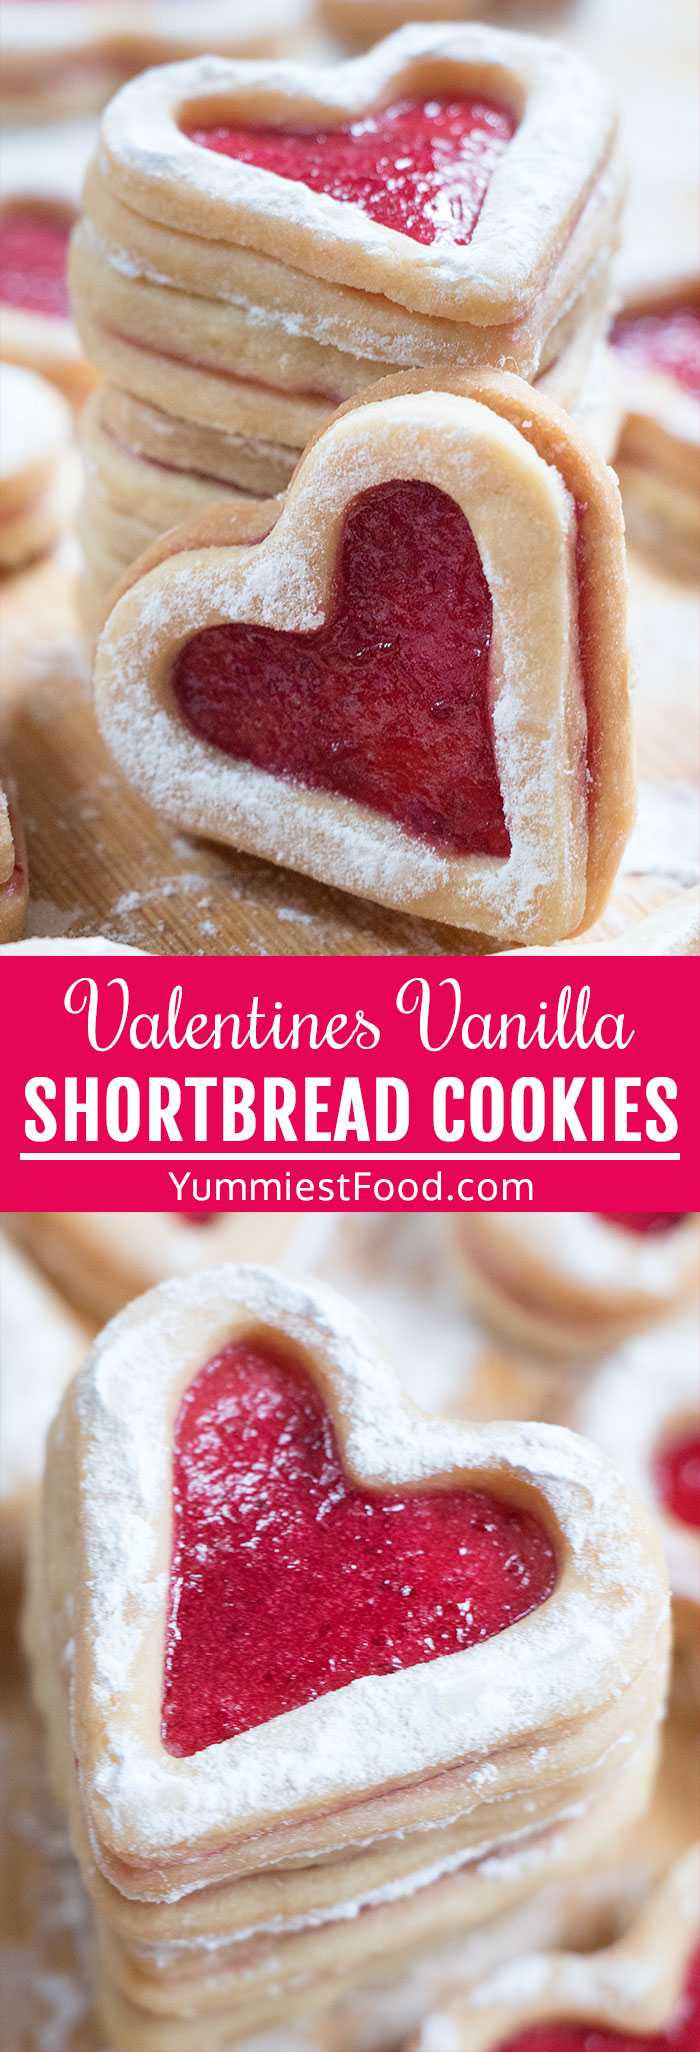 These cute Valentines Vanilla Shortbread Cookies are perfect recipe idea to make for him this Valentine's Day! 5-ingredient, easy, cute and delicious, buttery heart shaped sandwich cookie with a jam filling that melts in the mouth! #valentines #valentinesday #valentinesfood #valentinestreats #valentinescookies #heartcookies #cookies #easycookies #vanillacookies #shortbread #shortbreadcookies